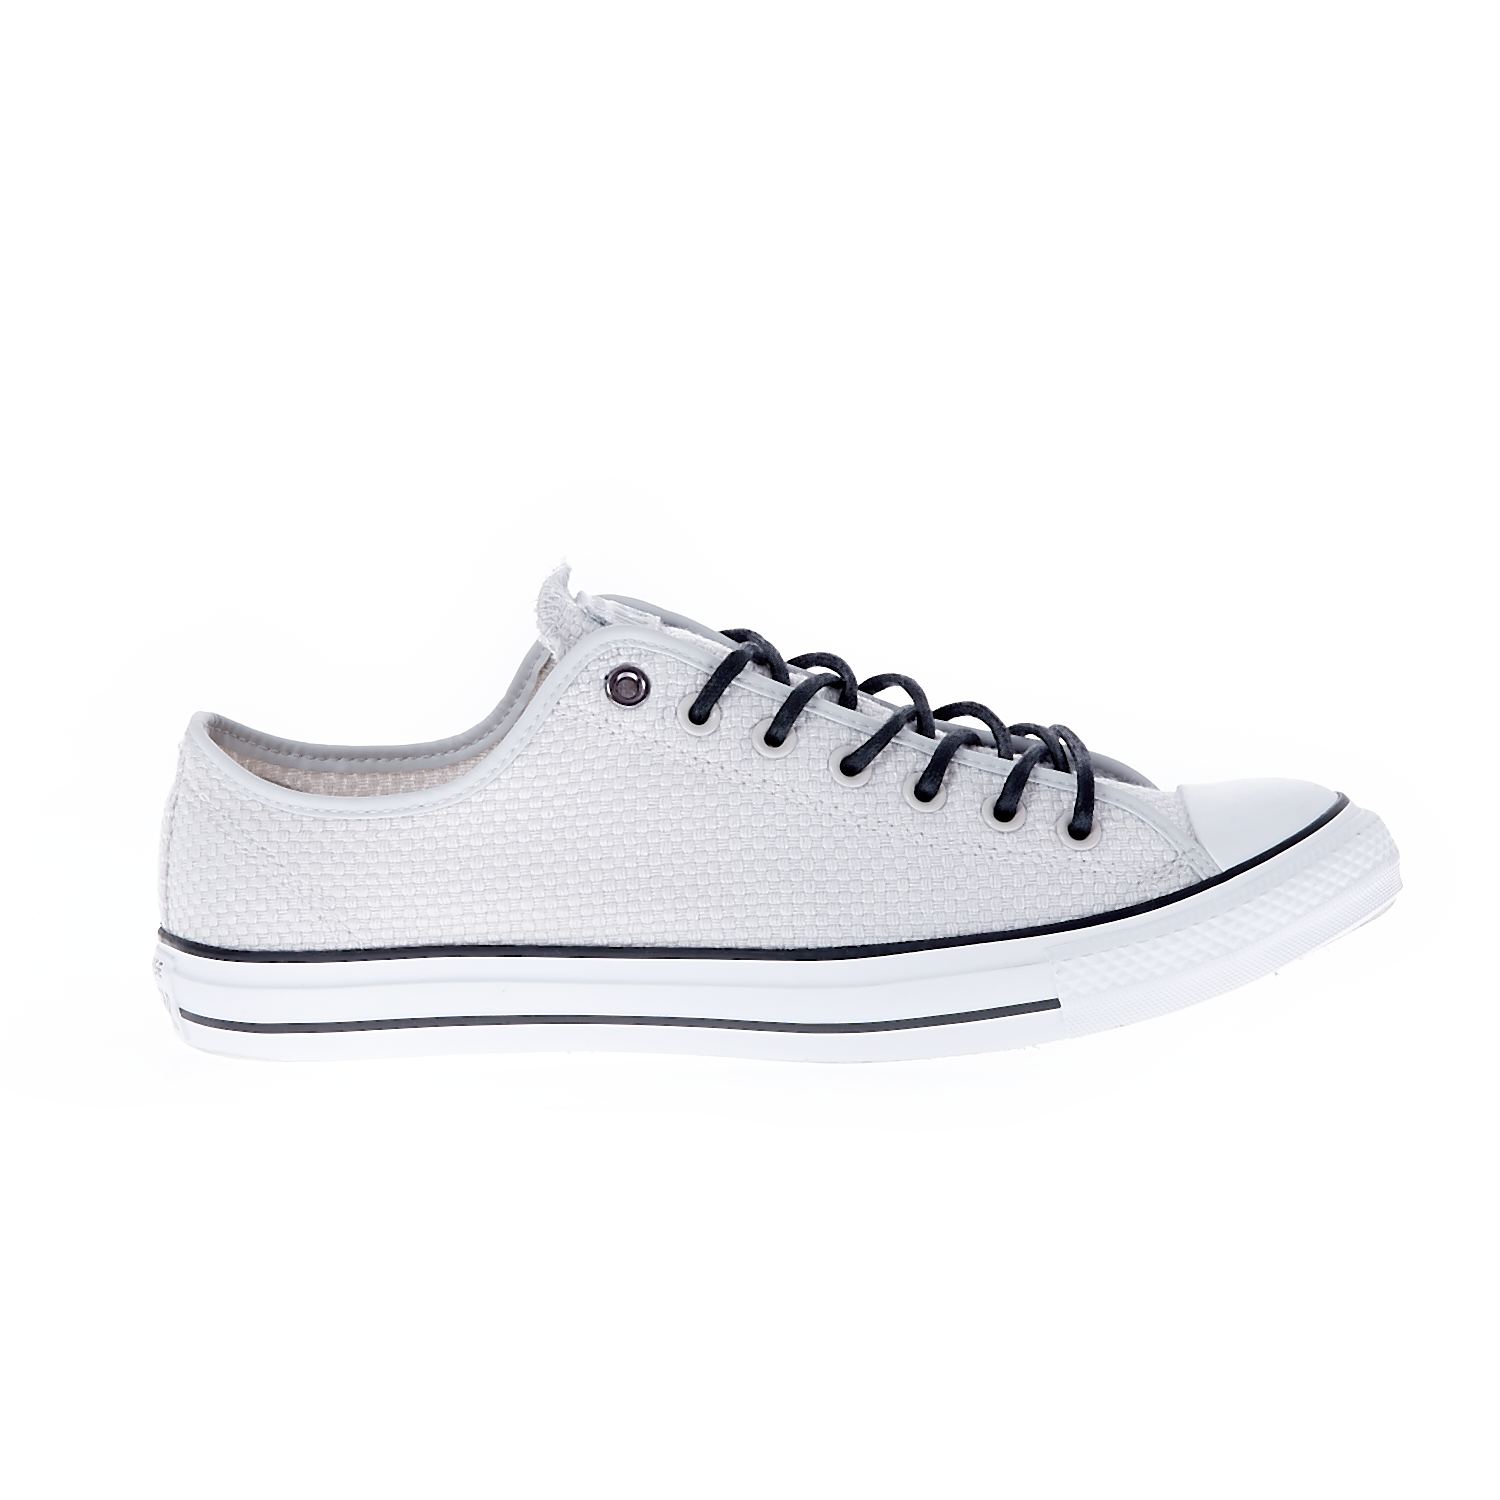 CONVERSE - Unisex παπούτσια Chuck Taylor All Star Ox λευκά-γκρι ανδρικά παπούτσια sneakers